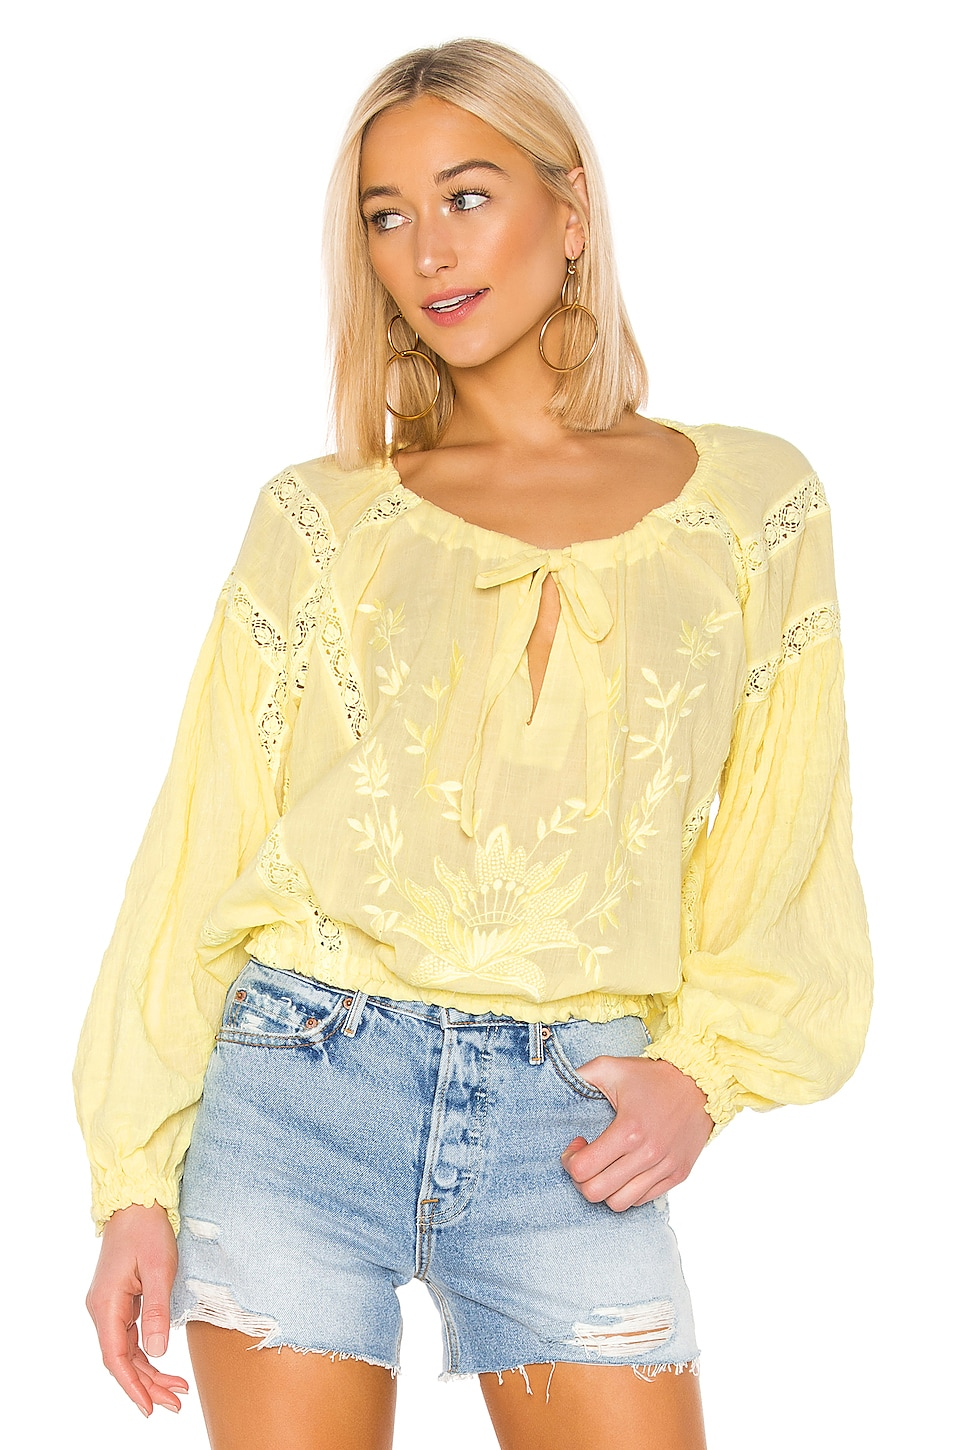 Free People Tops FREE PEOPLE MARIA MARIA LACE BLOUSE IN YELLOW.